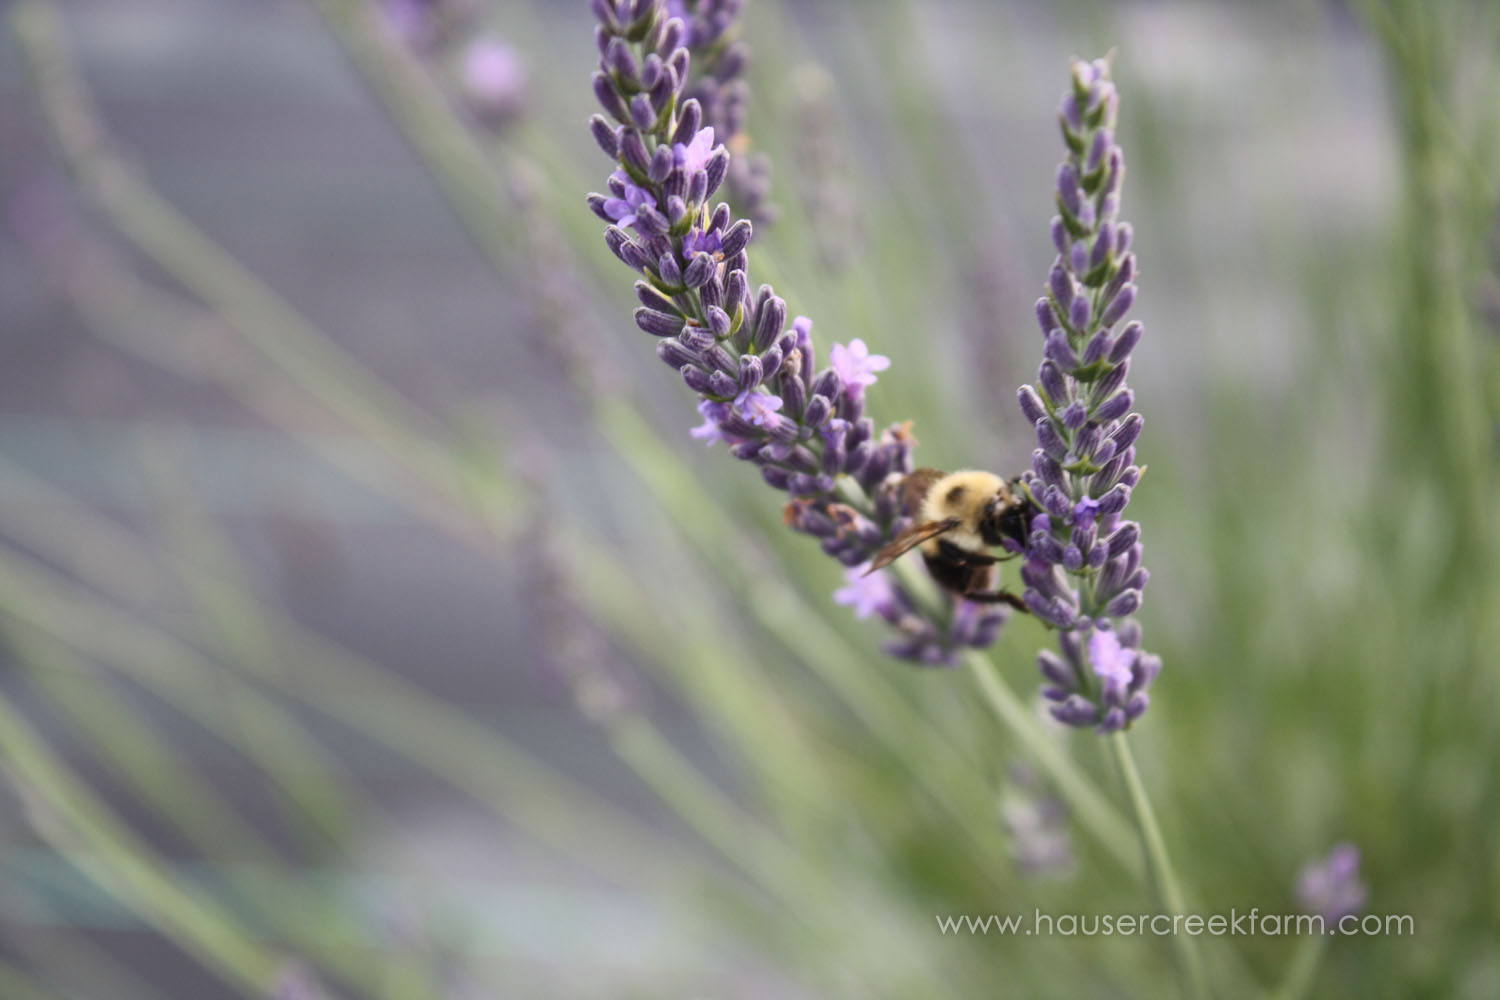 close-up-of-bumble-bee-on-purple-lavender-plant-IMG_9168.jpg